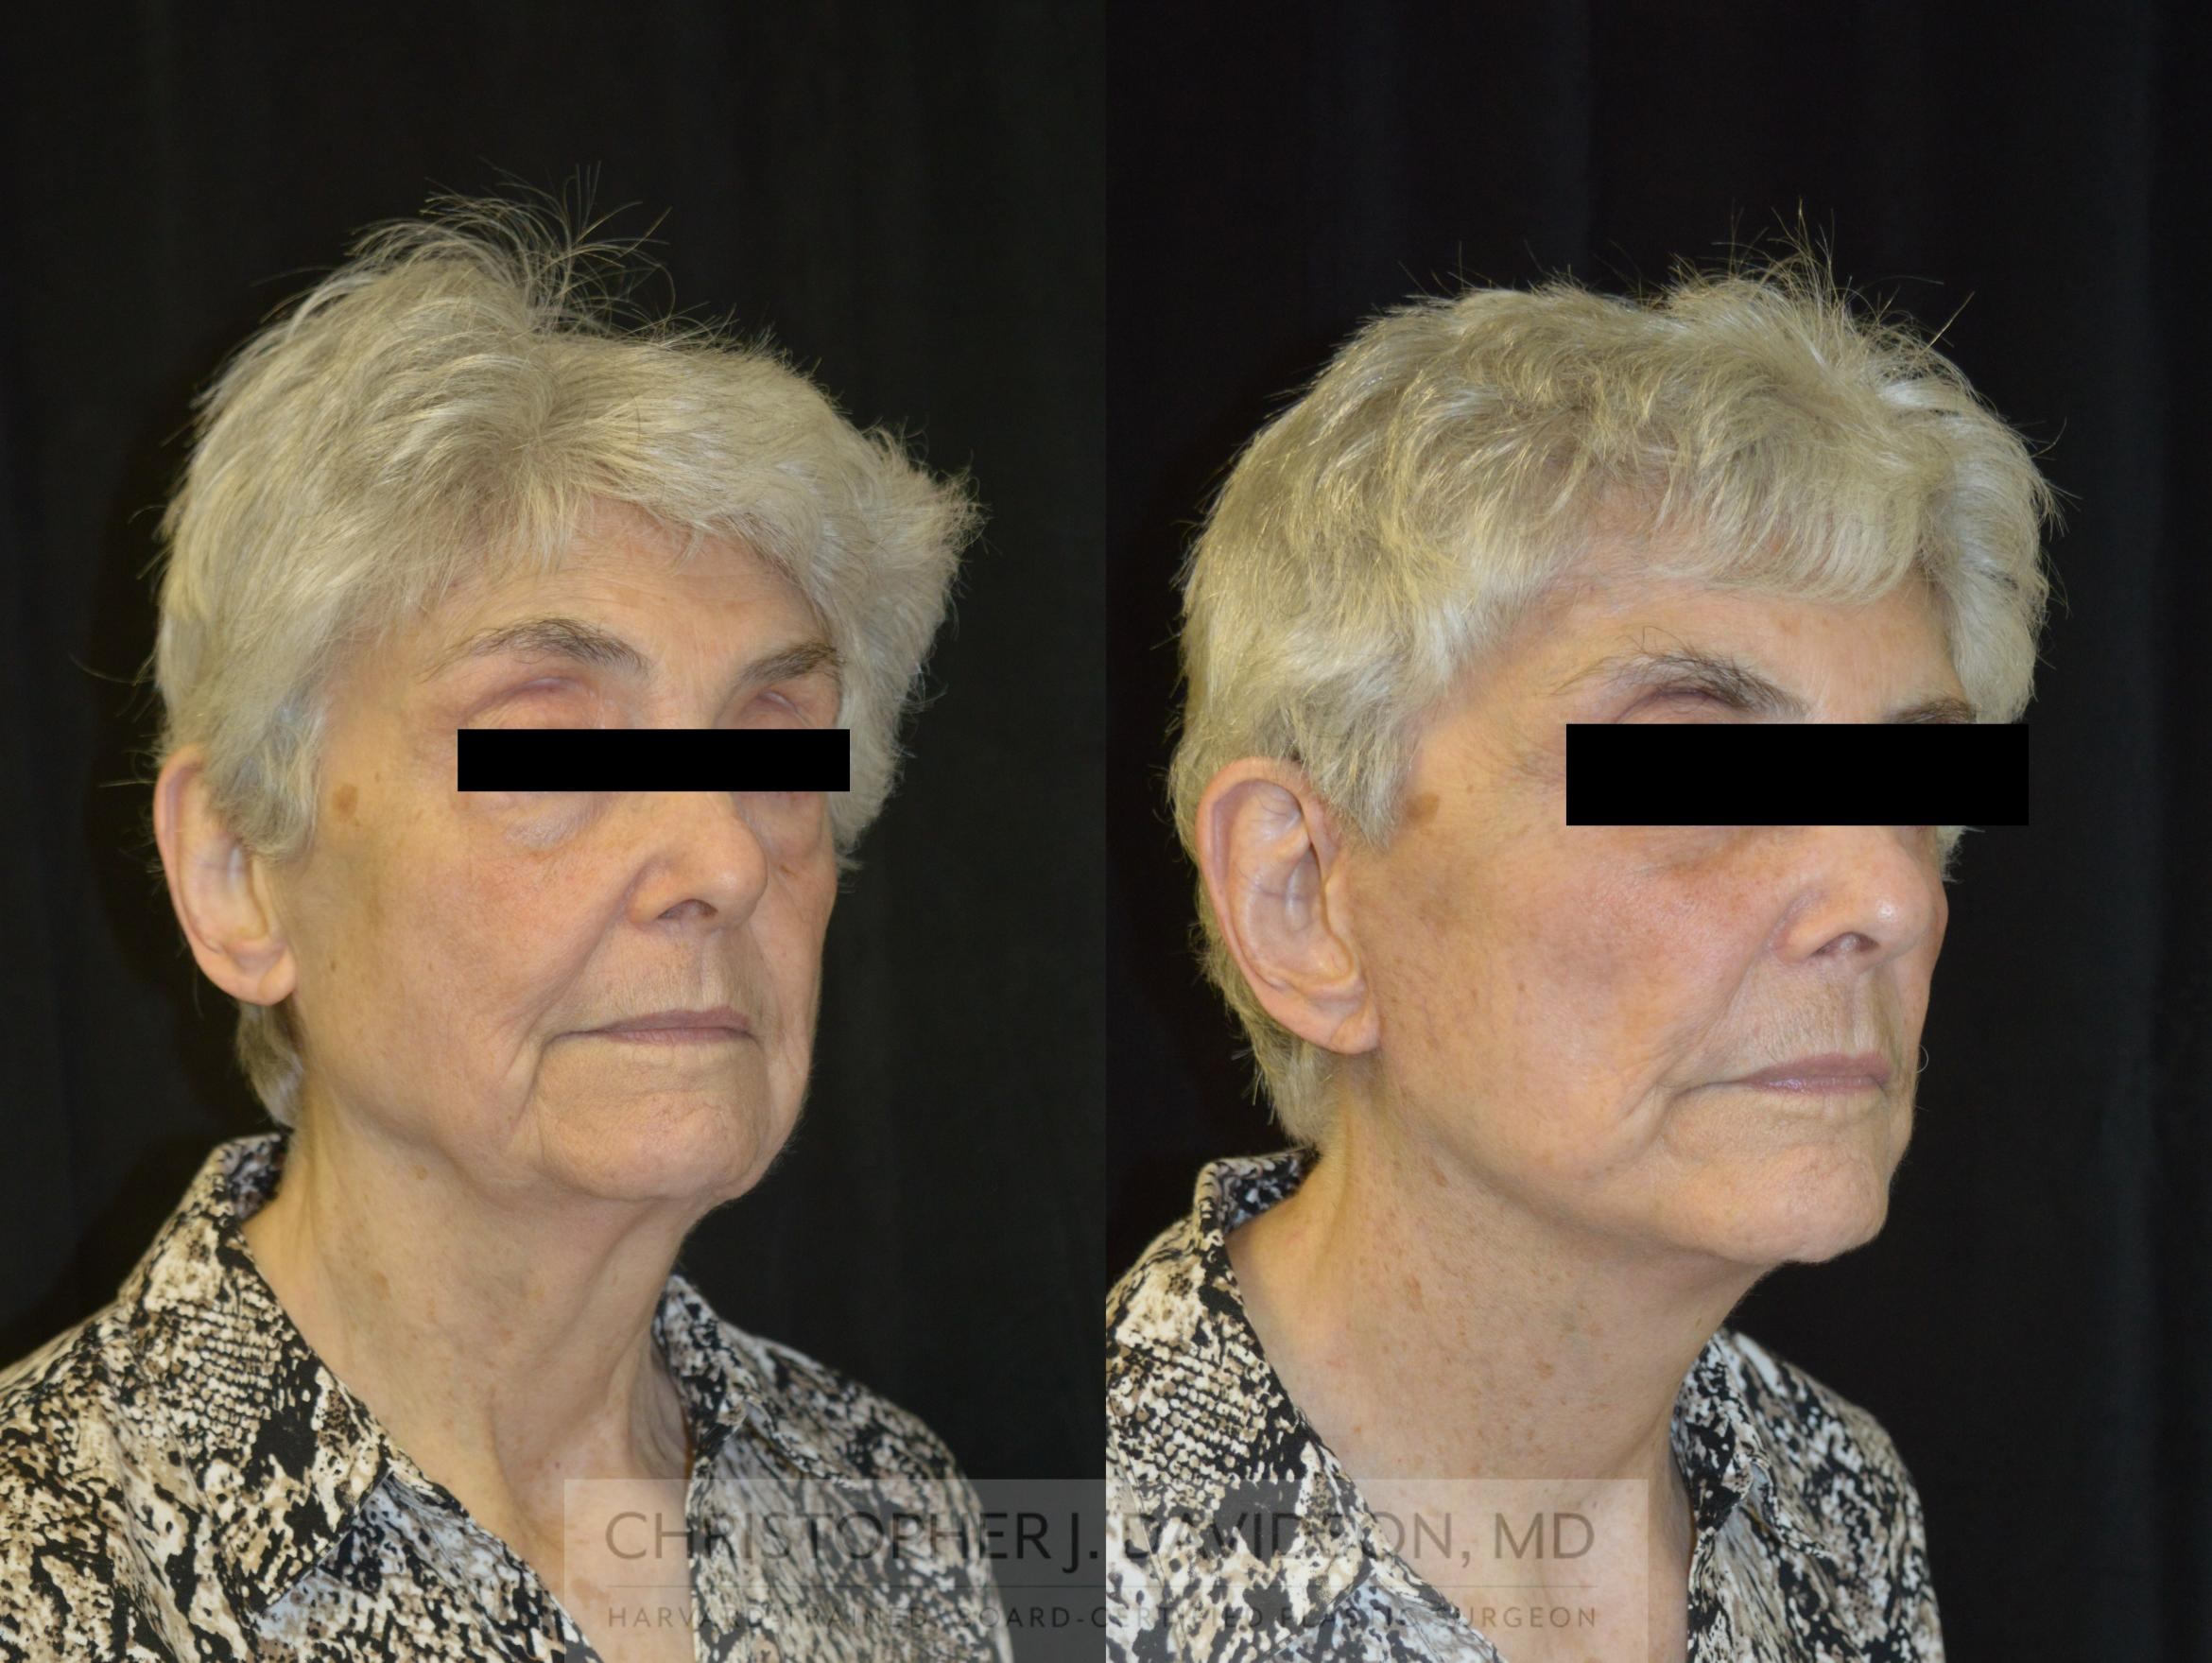 Facelift Surgery Case 233 Before & After View #2 | Boston, MA | Christopher J. Davidson, MD